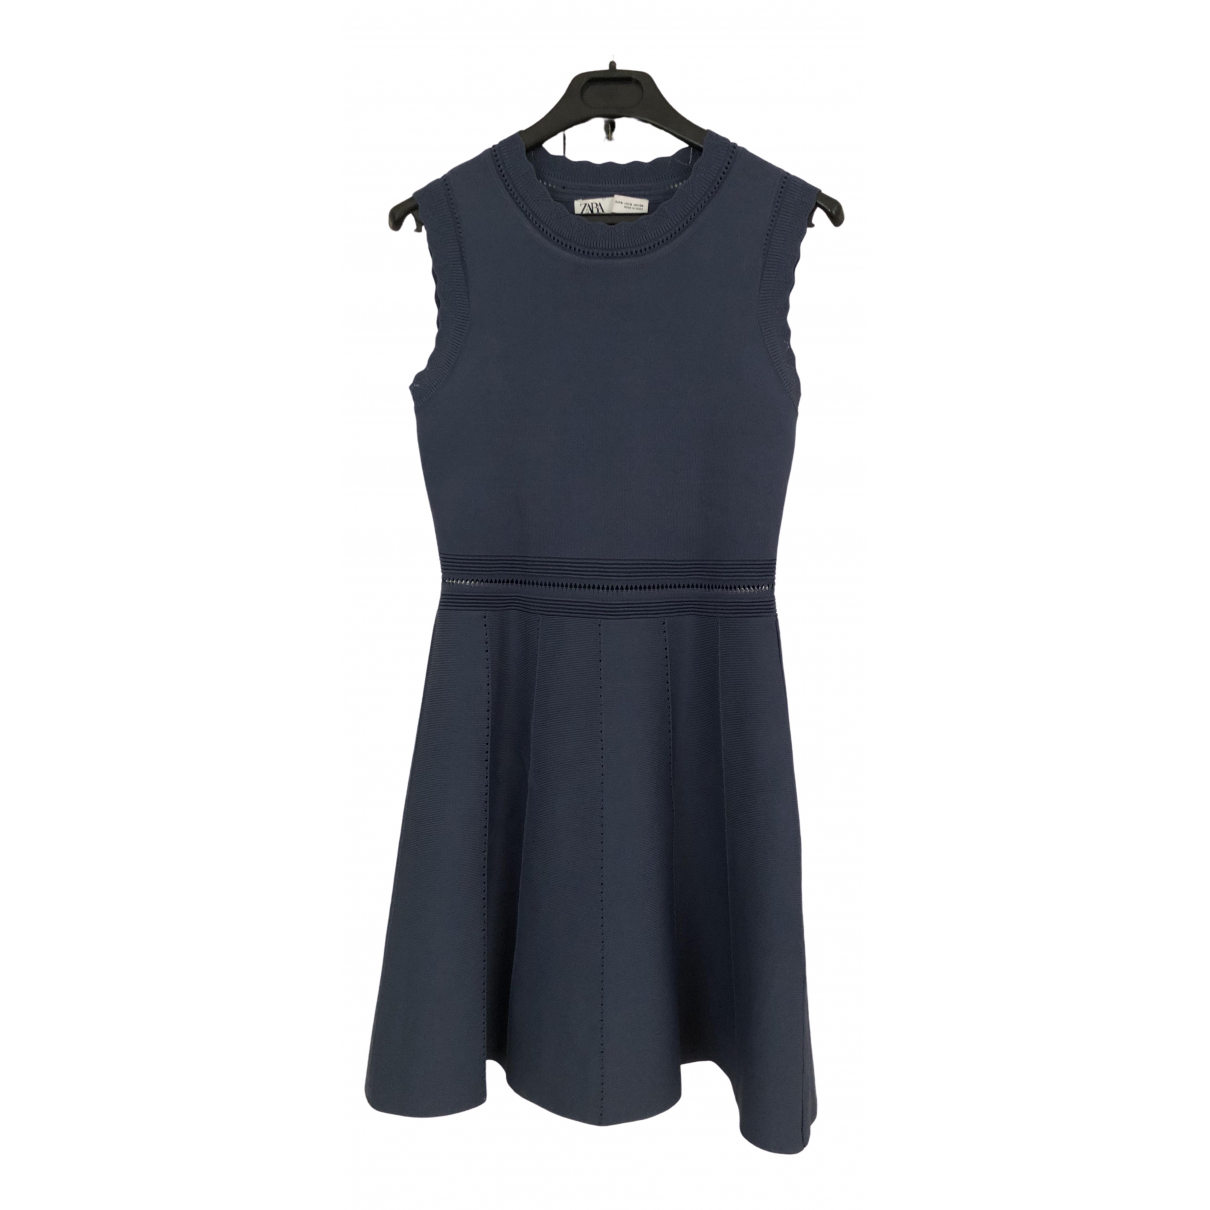 Zara \N Blue dress for Women S International